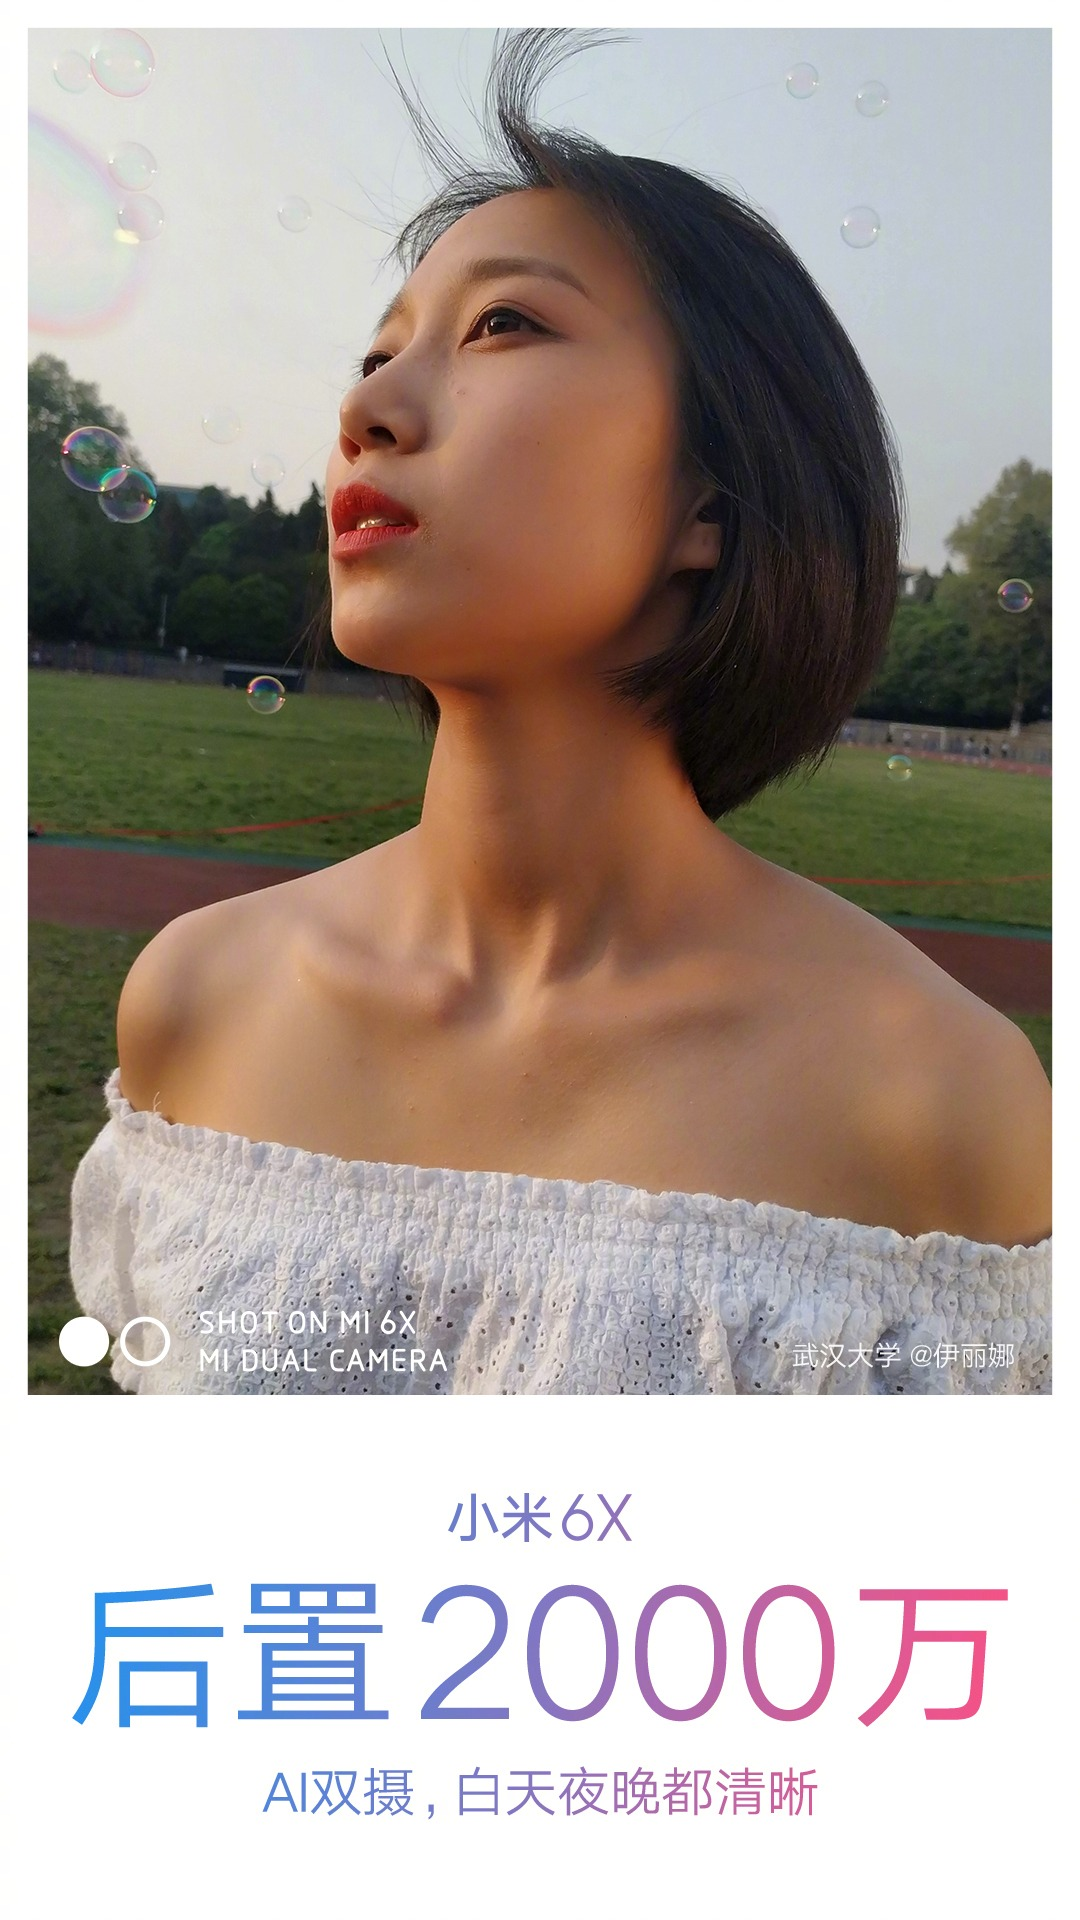 Check out these latest Xiaomi Mi 6X Camera Samples 2